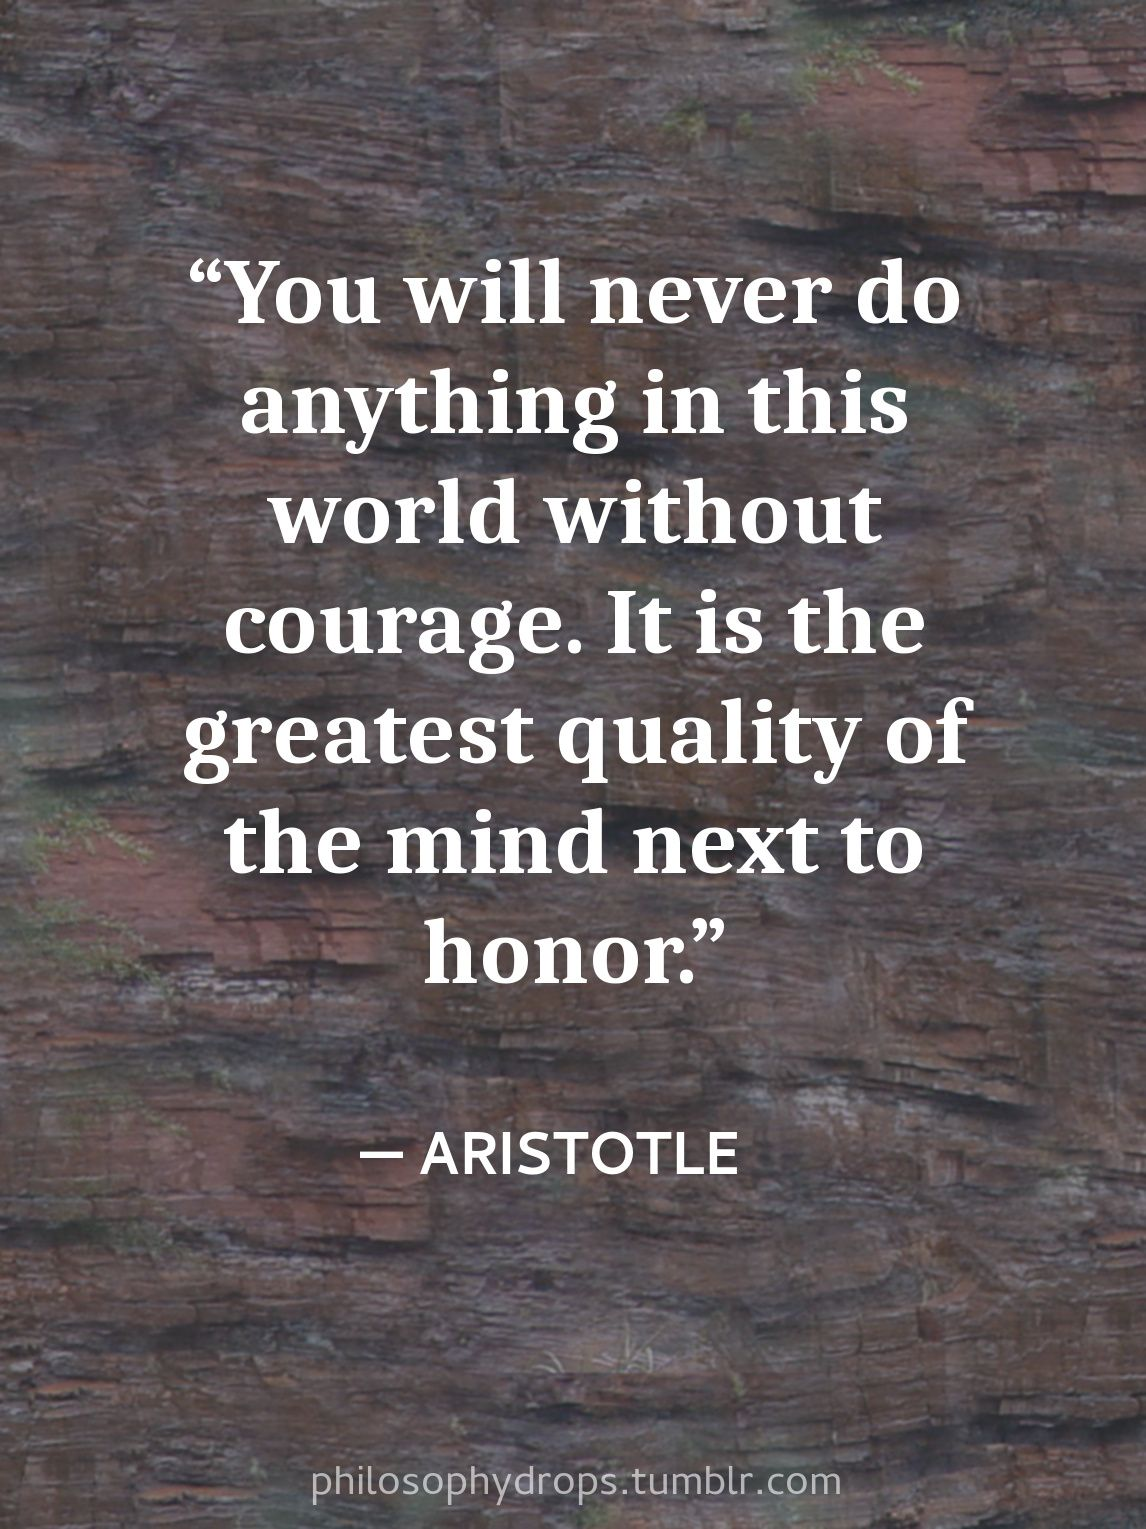 Philosophy Quotes Mesmerizing Philosophy Quotes Aristotle Courage Honor Greatest Quality Photo . Design Inspiration